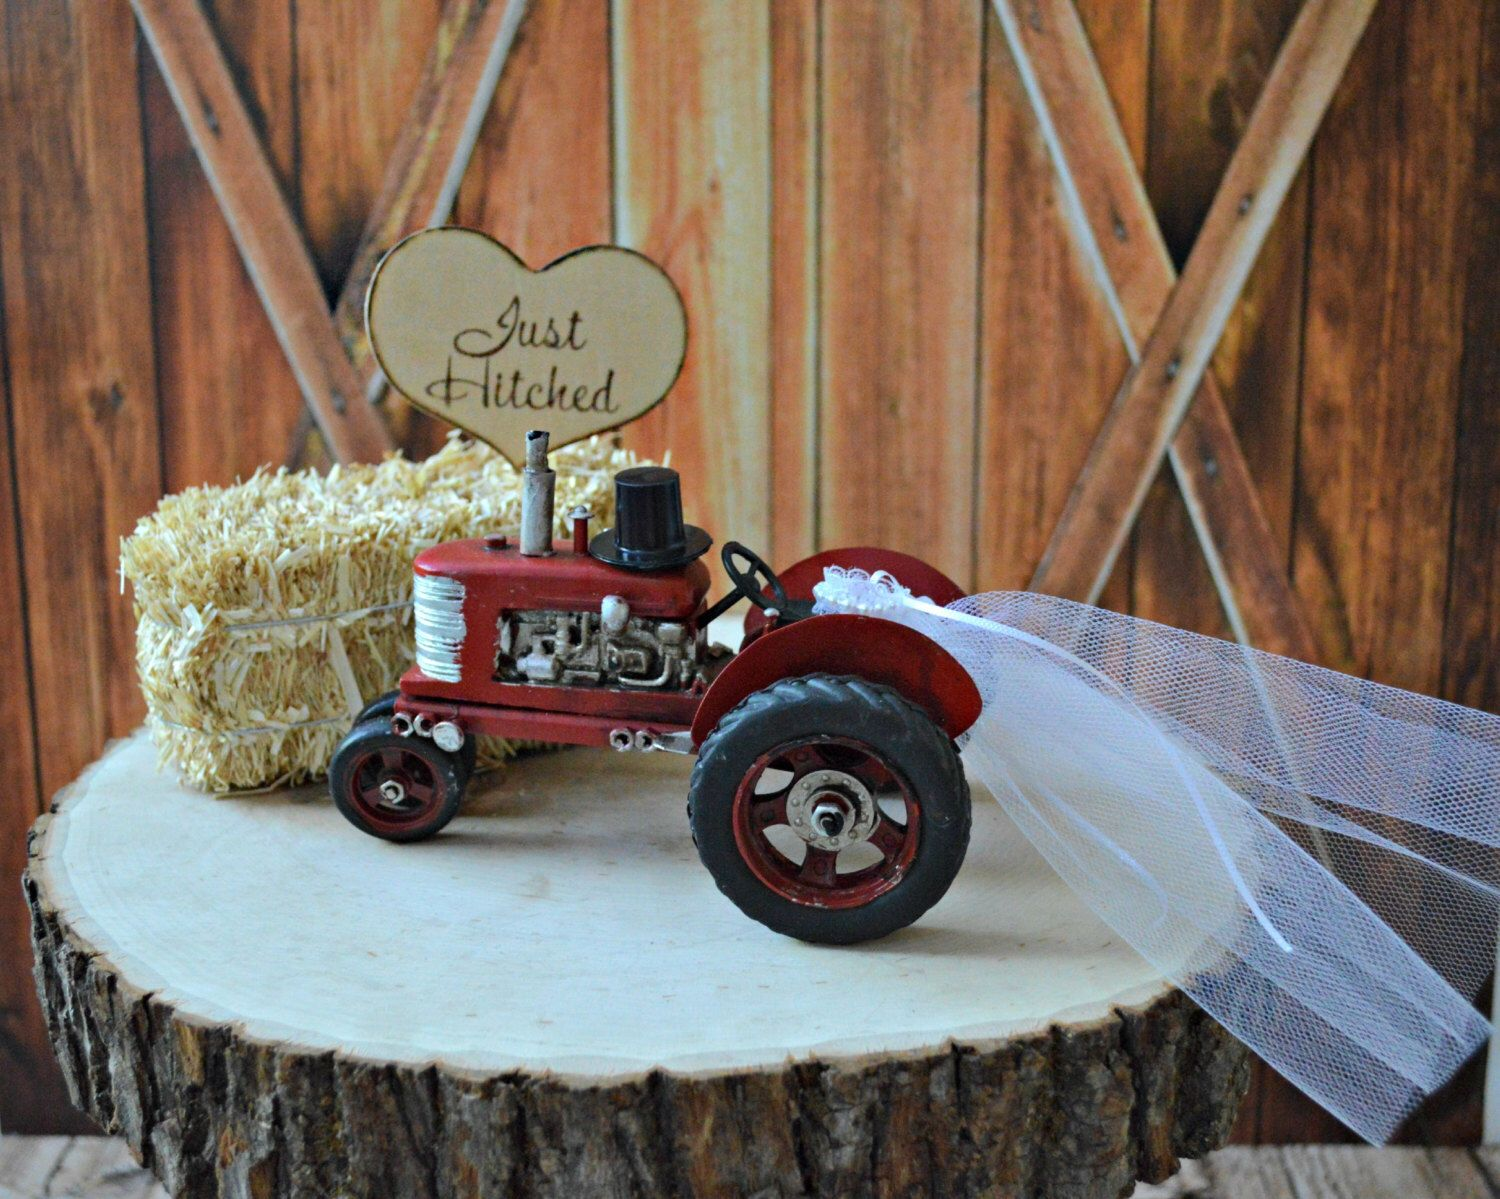 Pin by TATEMS on Heavy Equipment in 2018 | Pinterest | Wedding ...